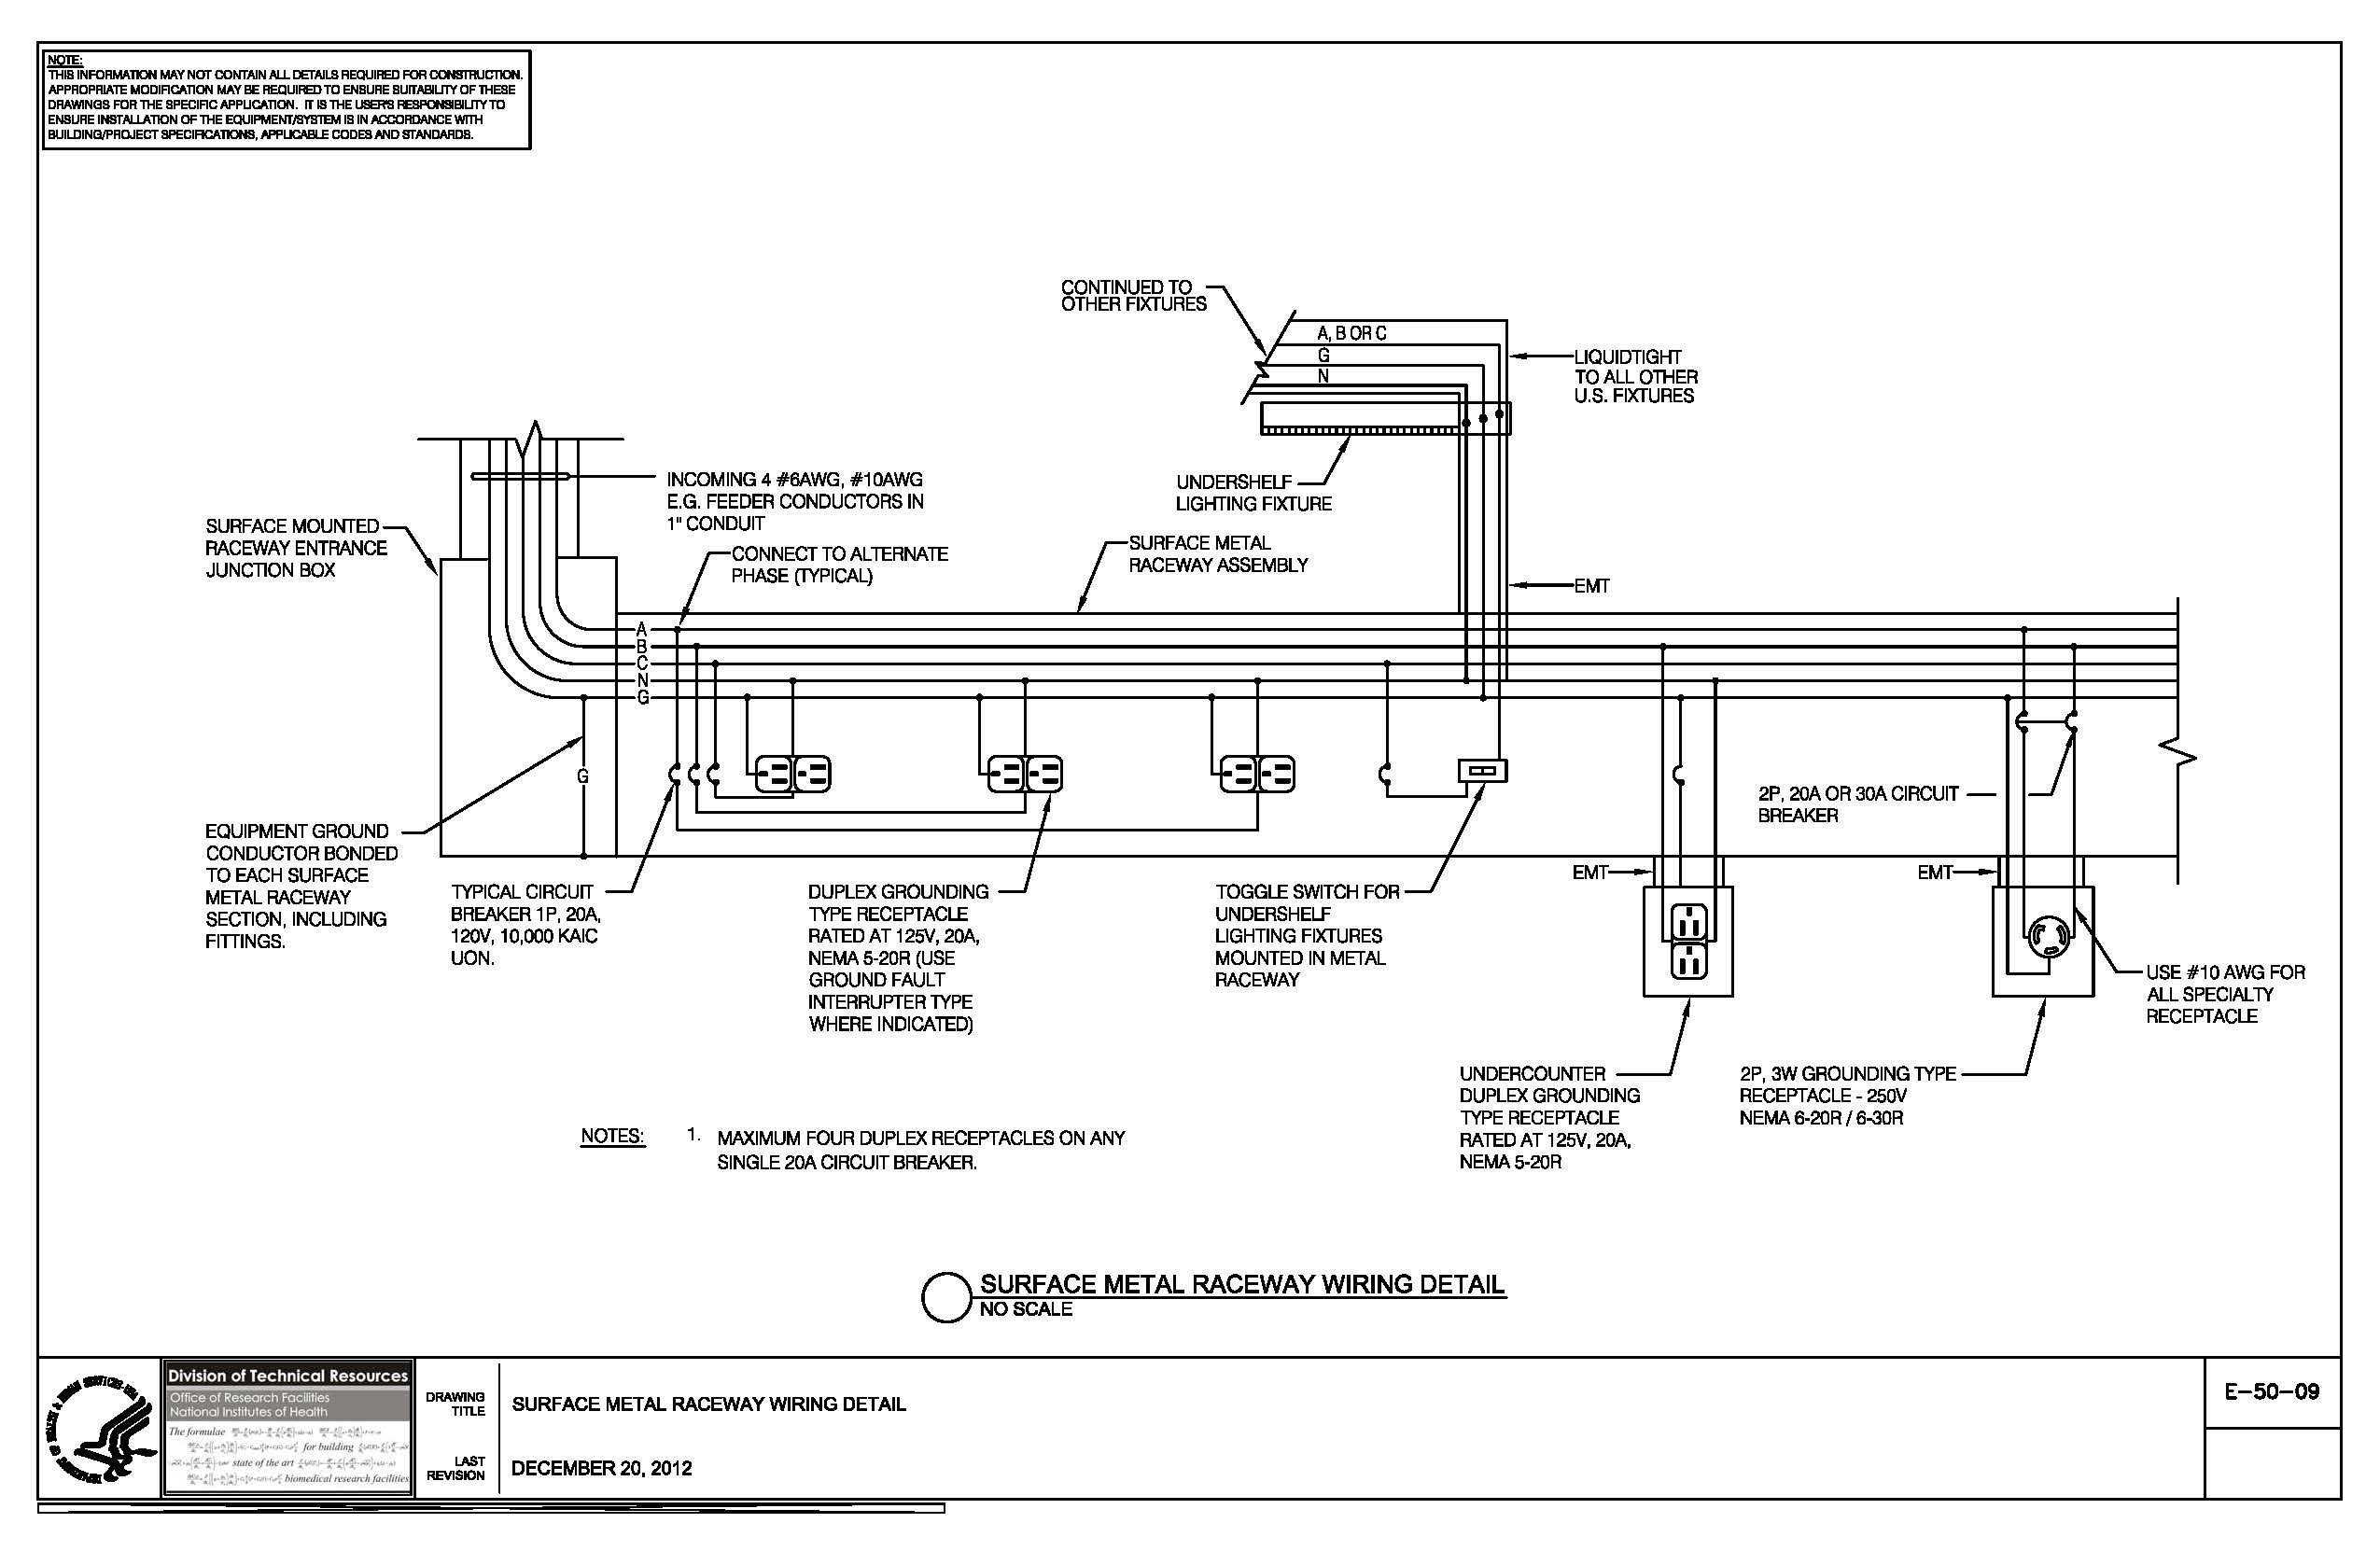 control transformer wiring diagram Download-pad mount transformer wiring diagram Collection of E 50 09 Surface Metal Raceway Wiring Detail DOWNLOAD Wiring Diagram 16-t